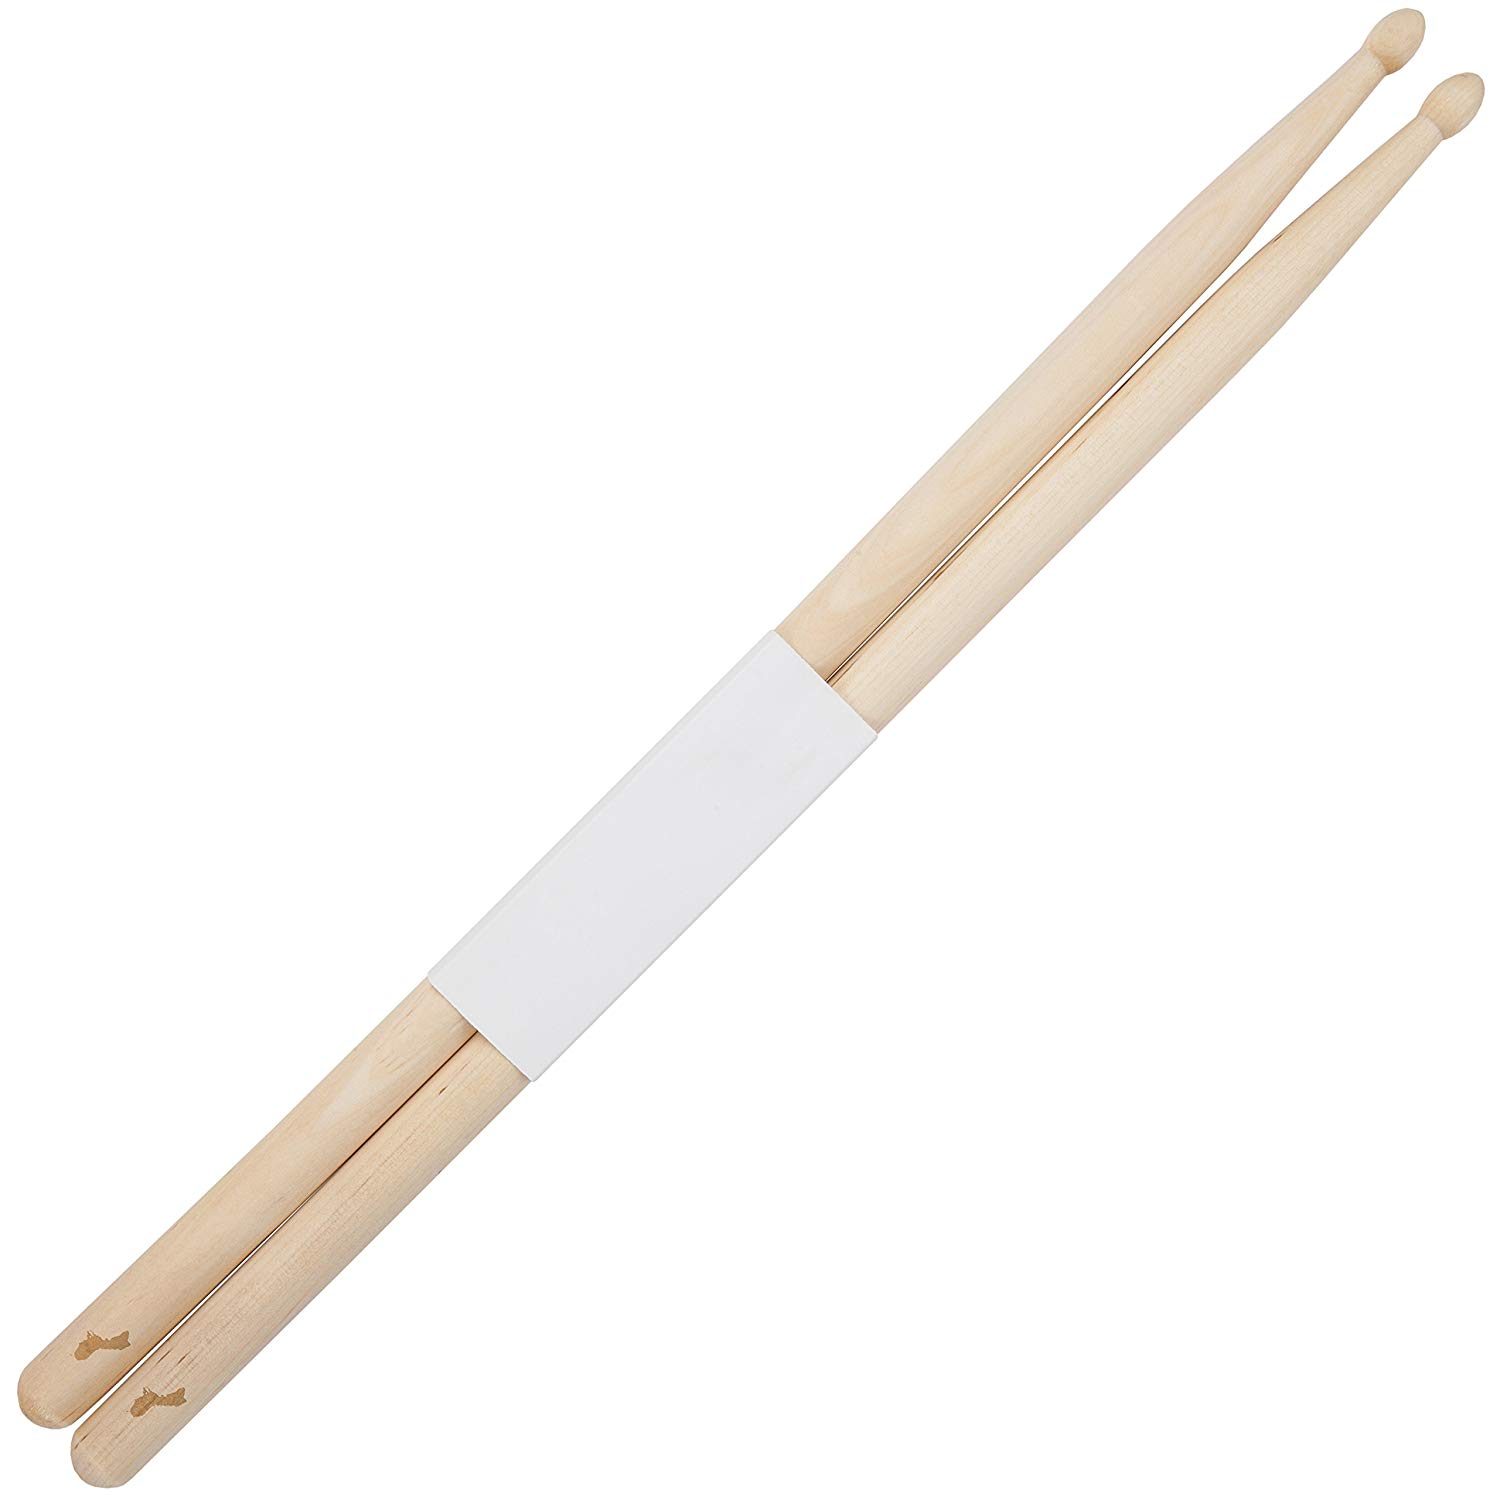 Guam 5B Maple Drumsticks With Laser Engraved Design - Durable Drumstick Set With Wooden Tip - Wood Drumsticks Gift